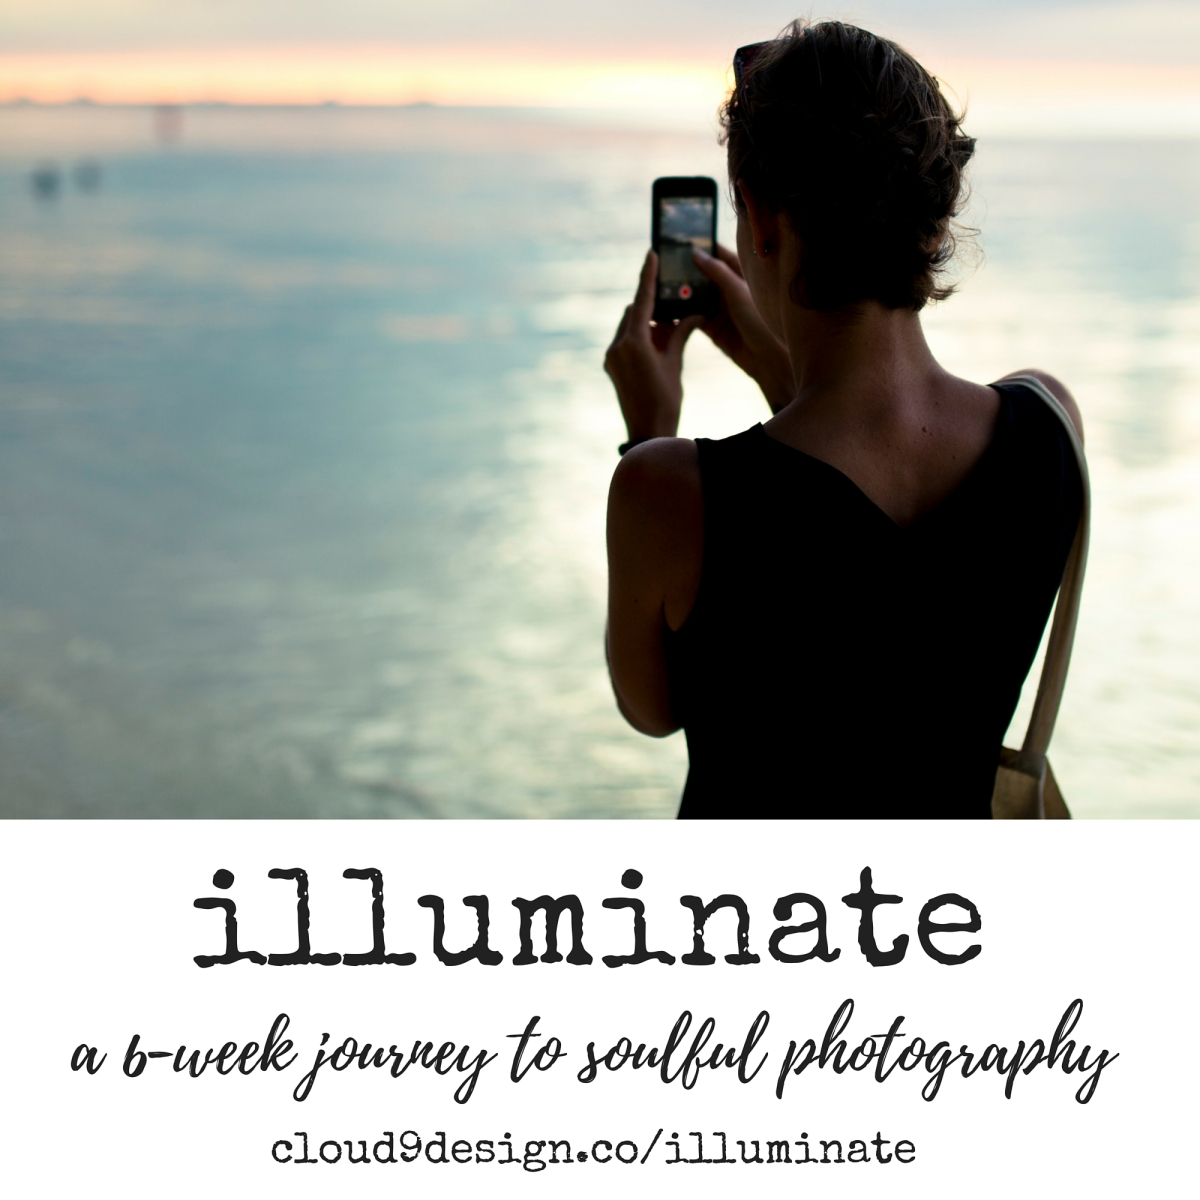 illuminate: a 6 week journey to soulful photography